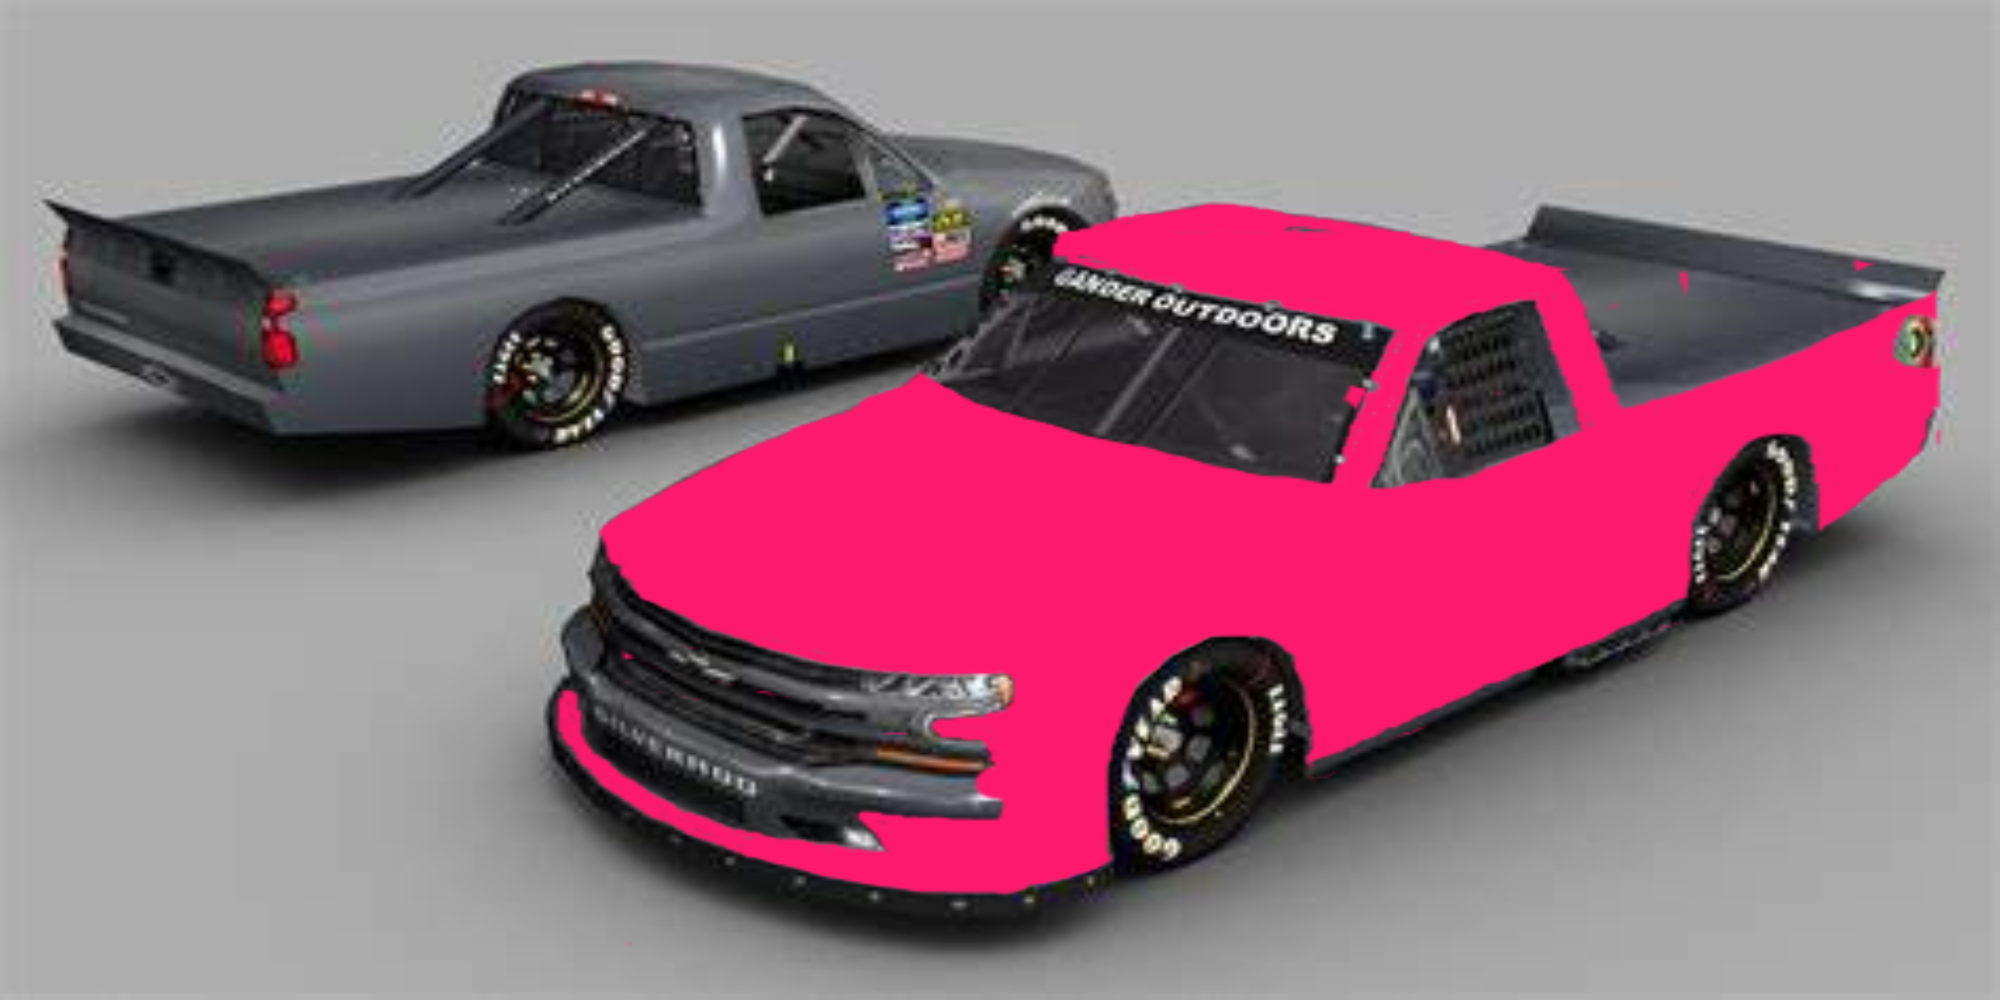 2020 CHEVY NASCAR TRUCK SMALL